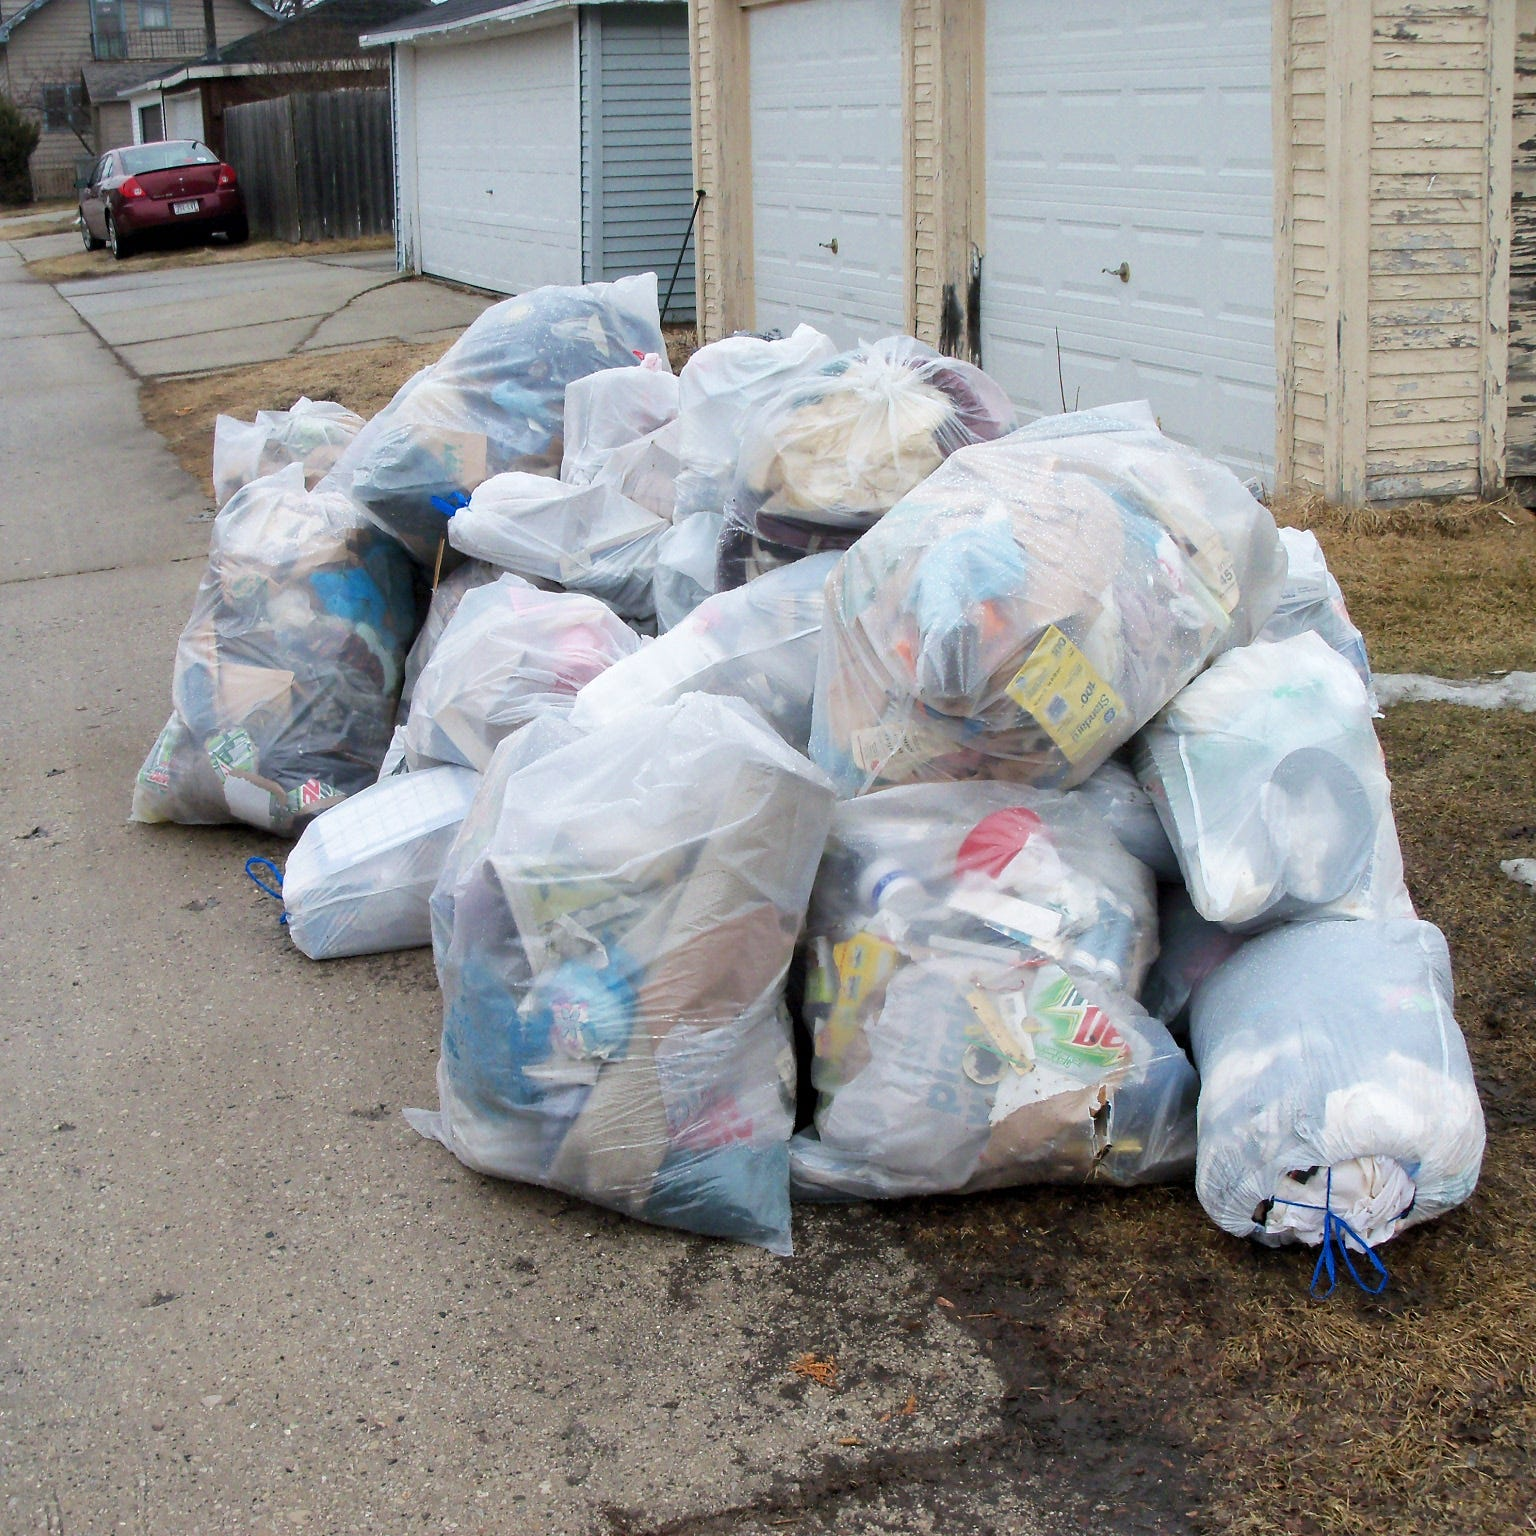 The city of Sheboygan will automate garbage collection in 2020. Here's how it will work.